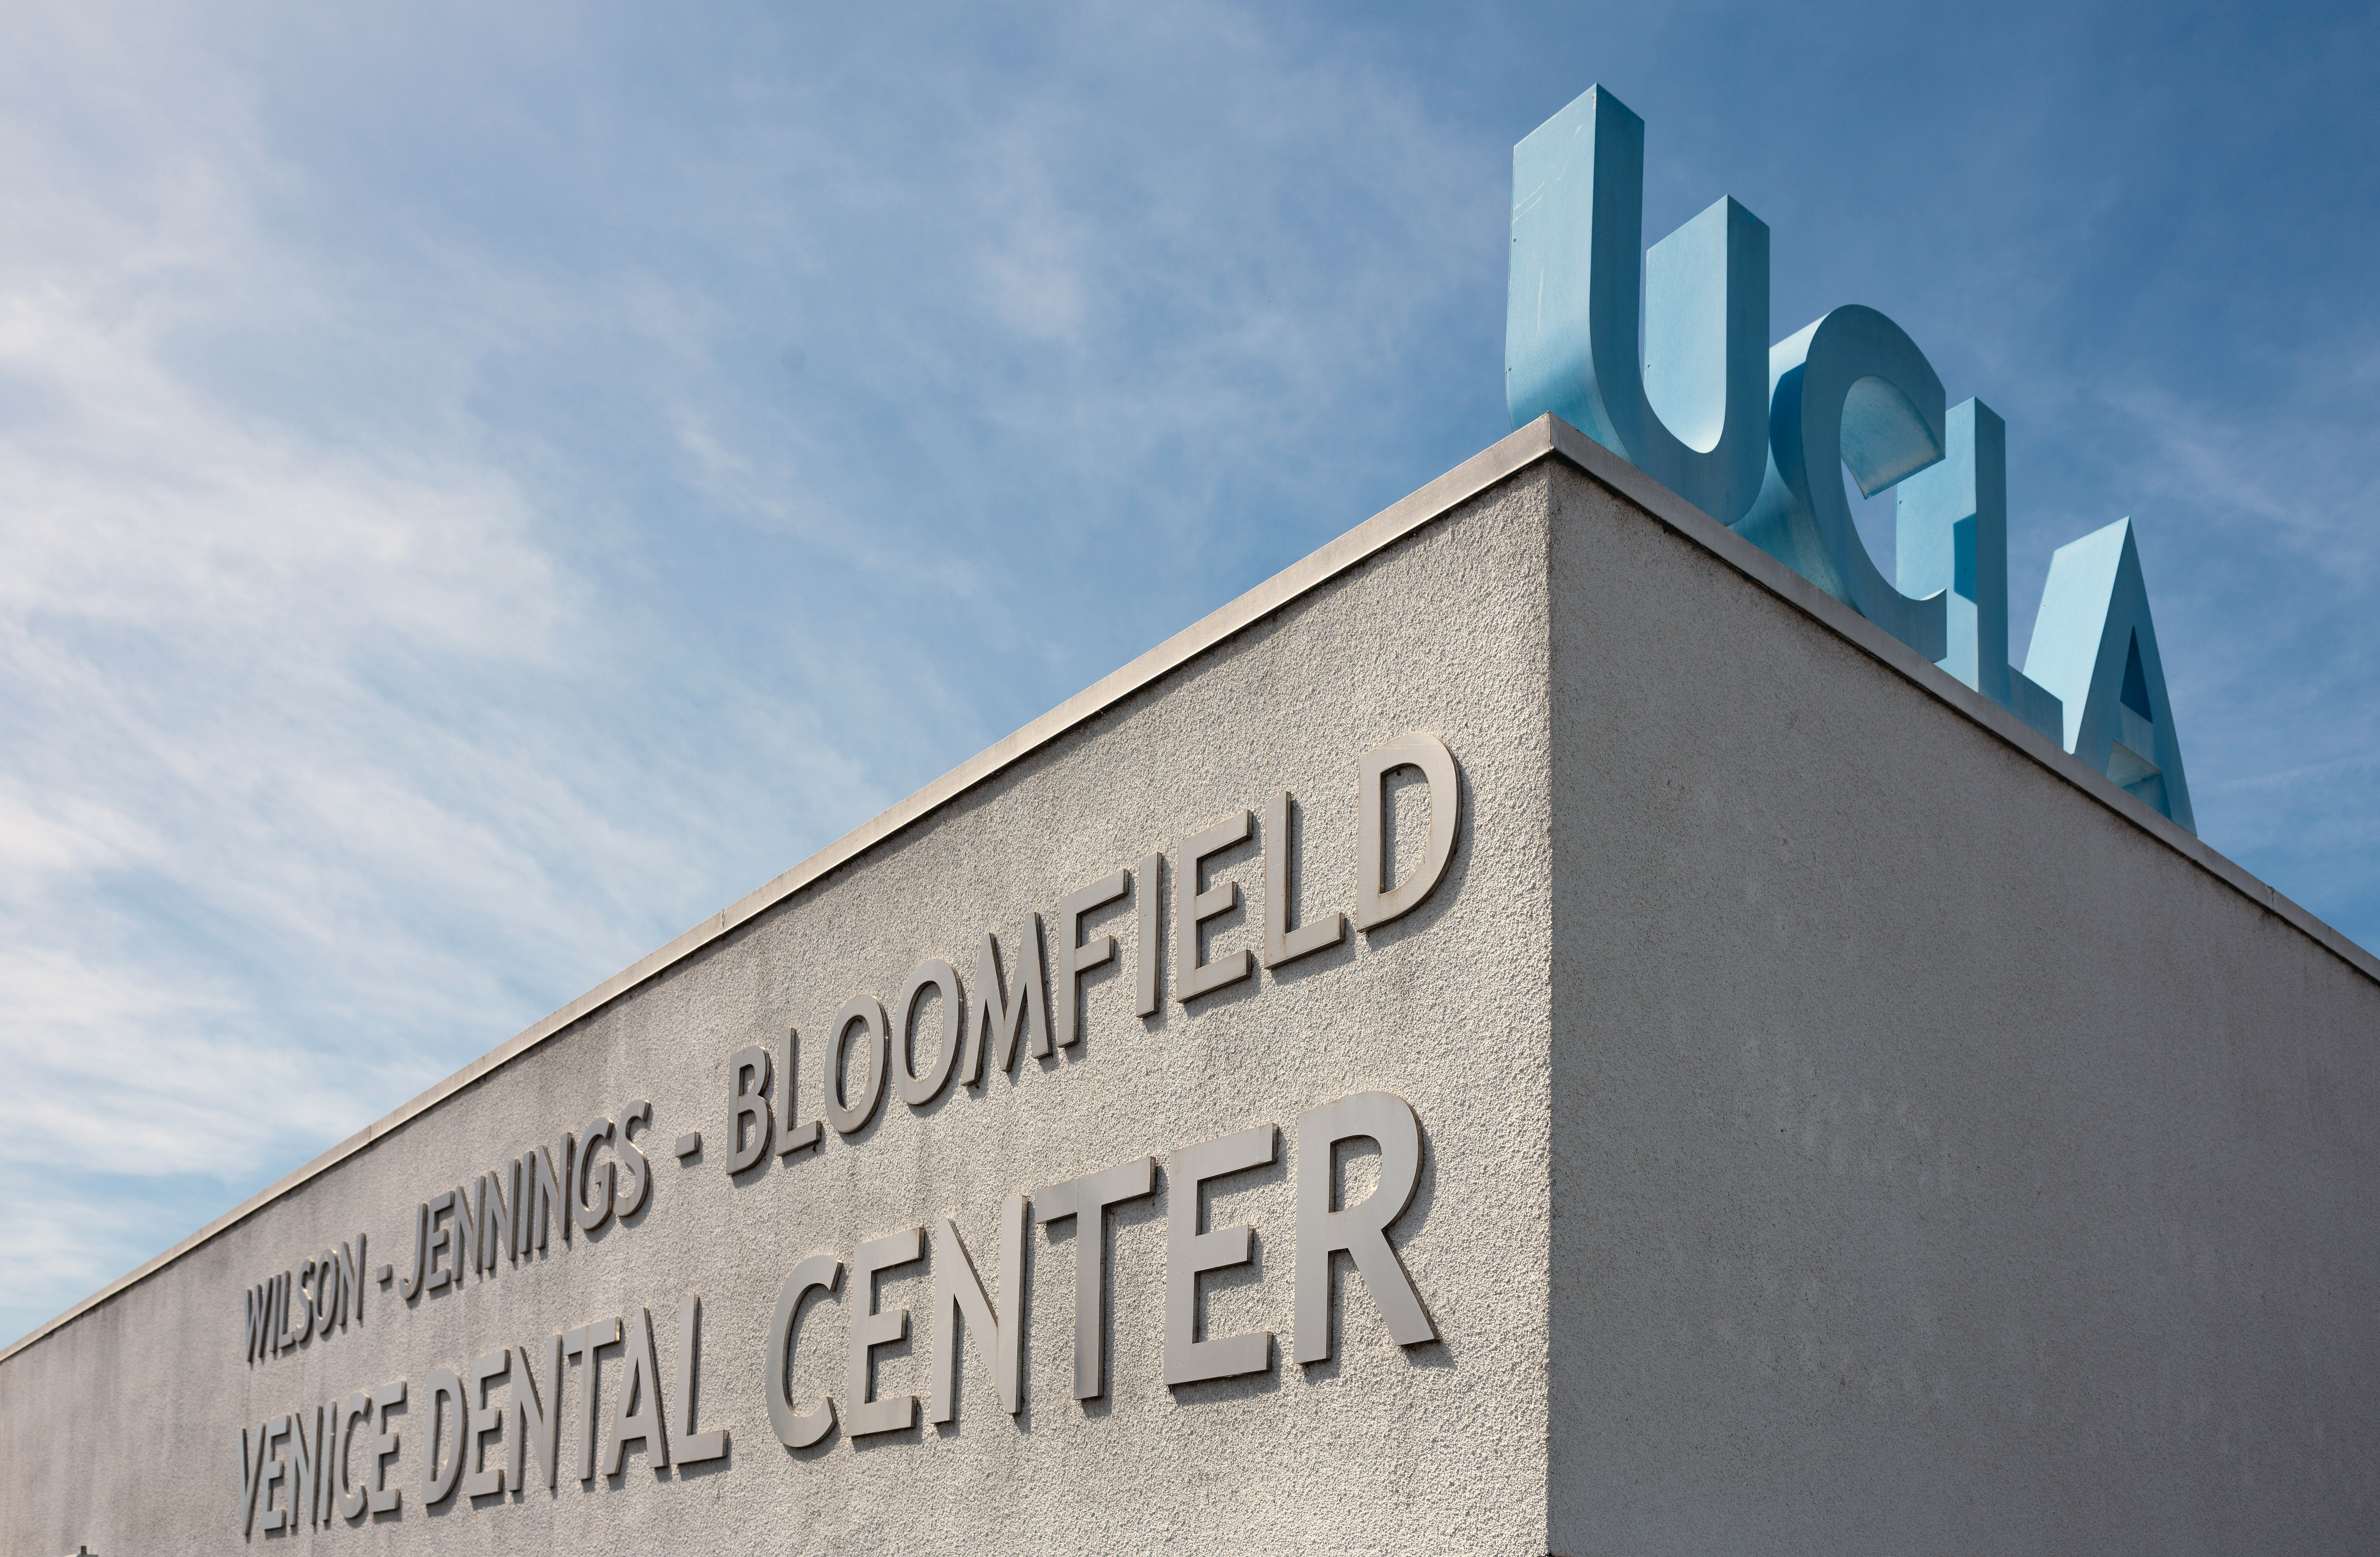 UCLA dental clinic shines as beacon of health and dignity